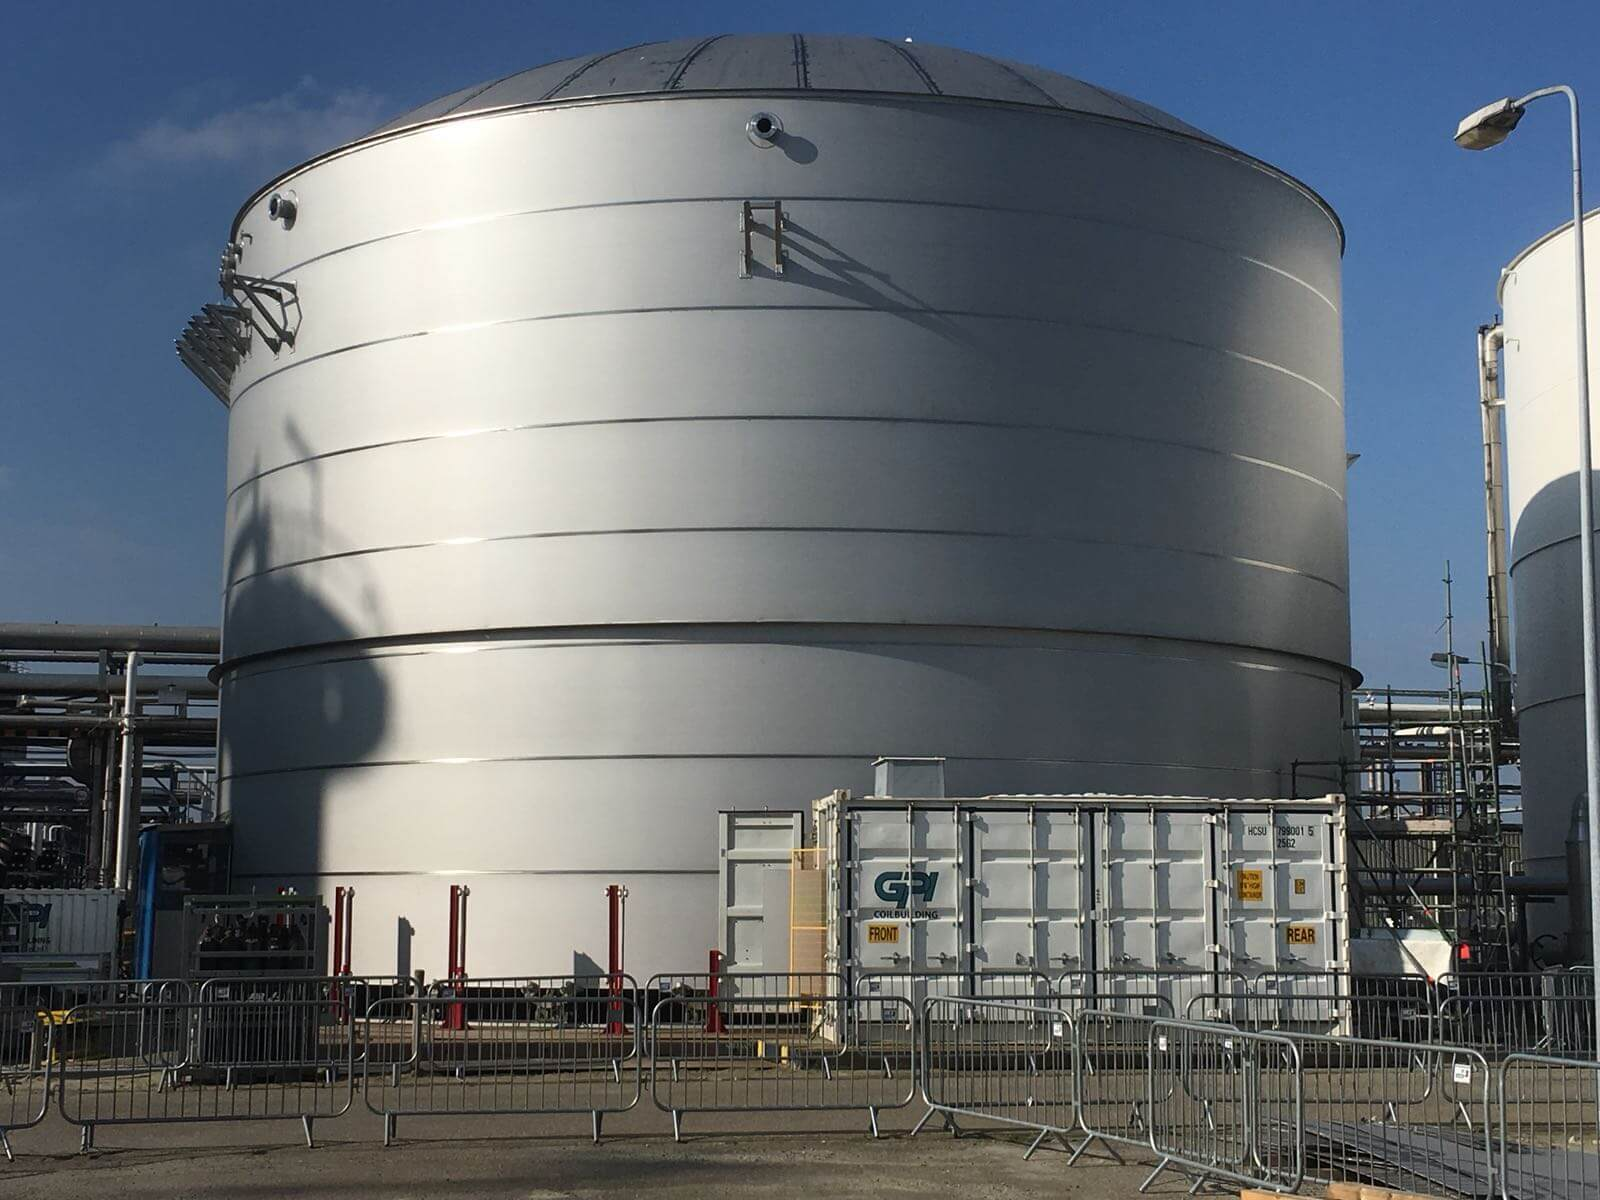 Gpi has build a 3995 m3 demiwater tank for Dow Chemicals Terneuzen